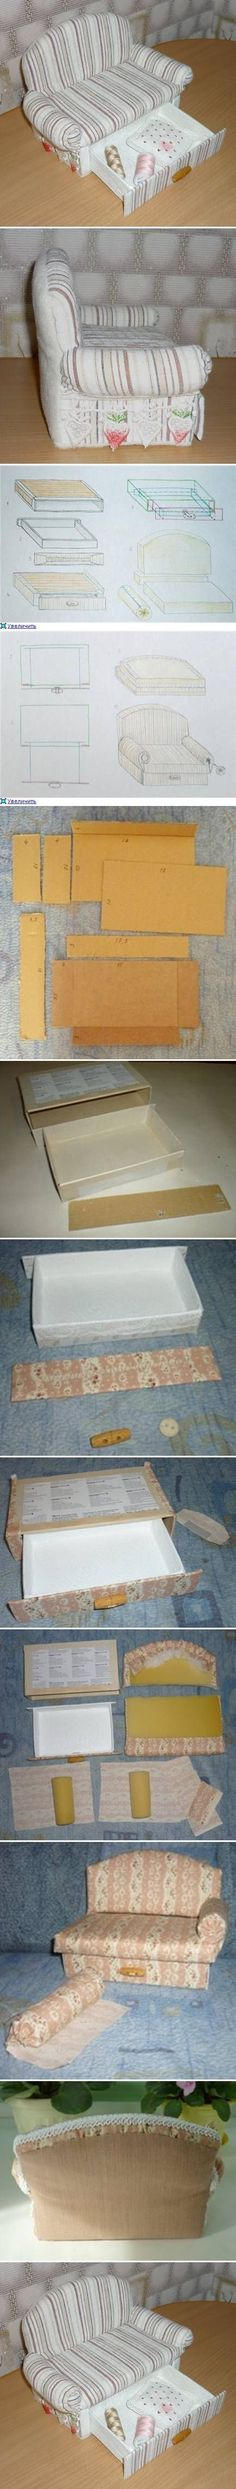 How to make Cardboard Sofa with Drawer storage unit step by step DIY tutorial instructions / How To Instructions